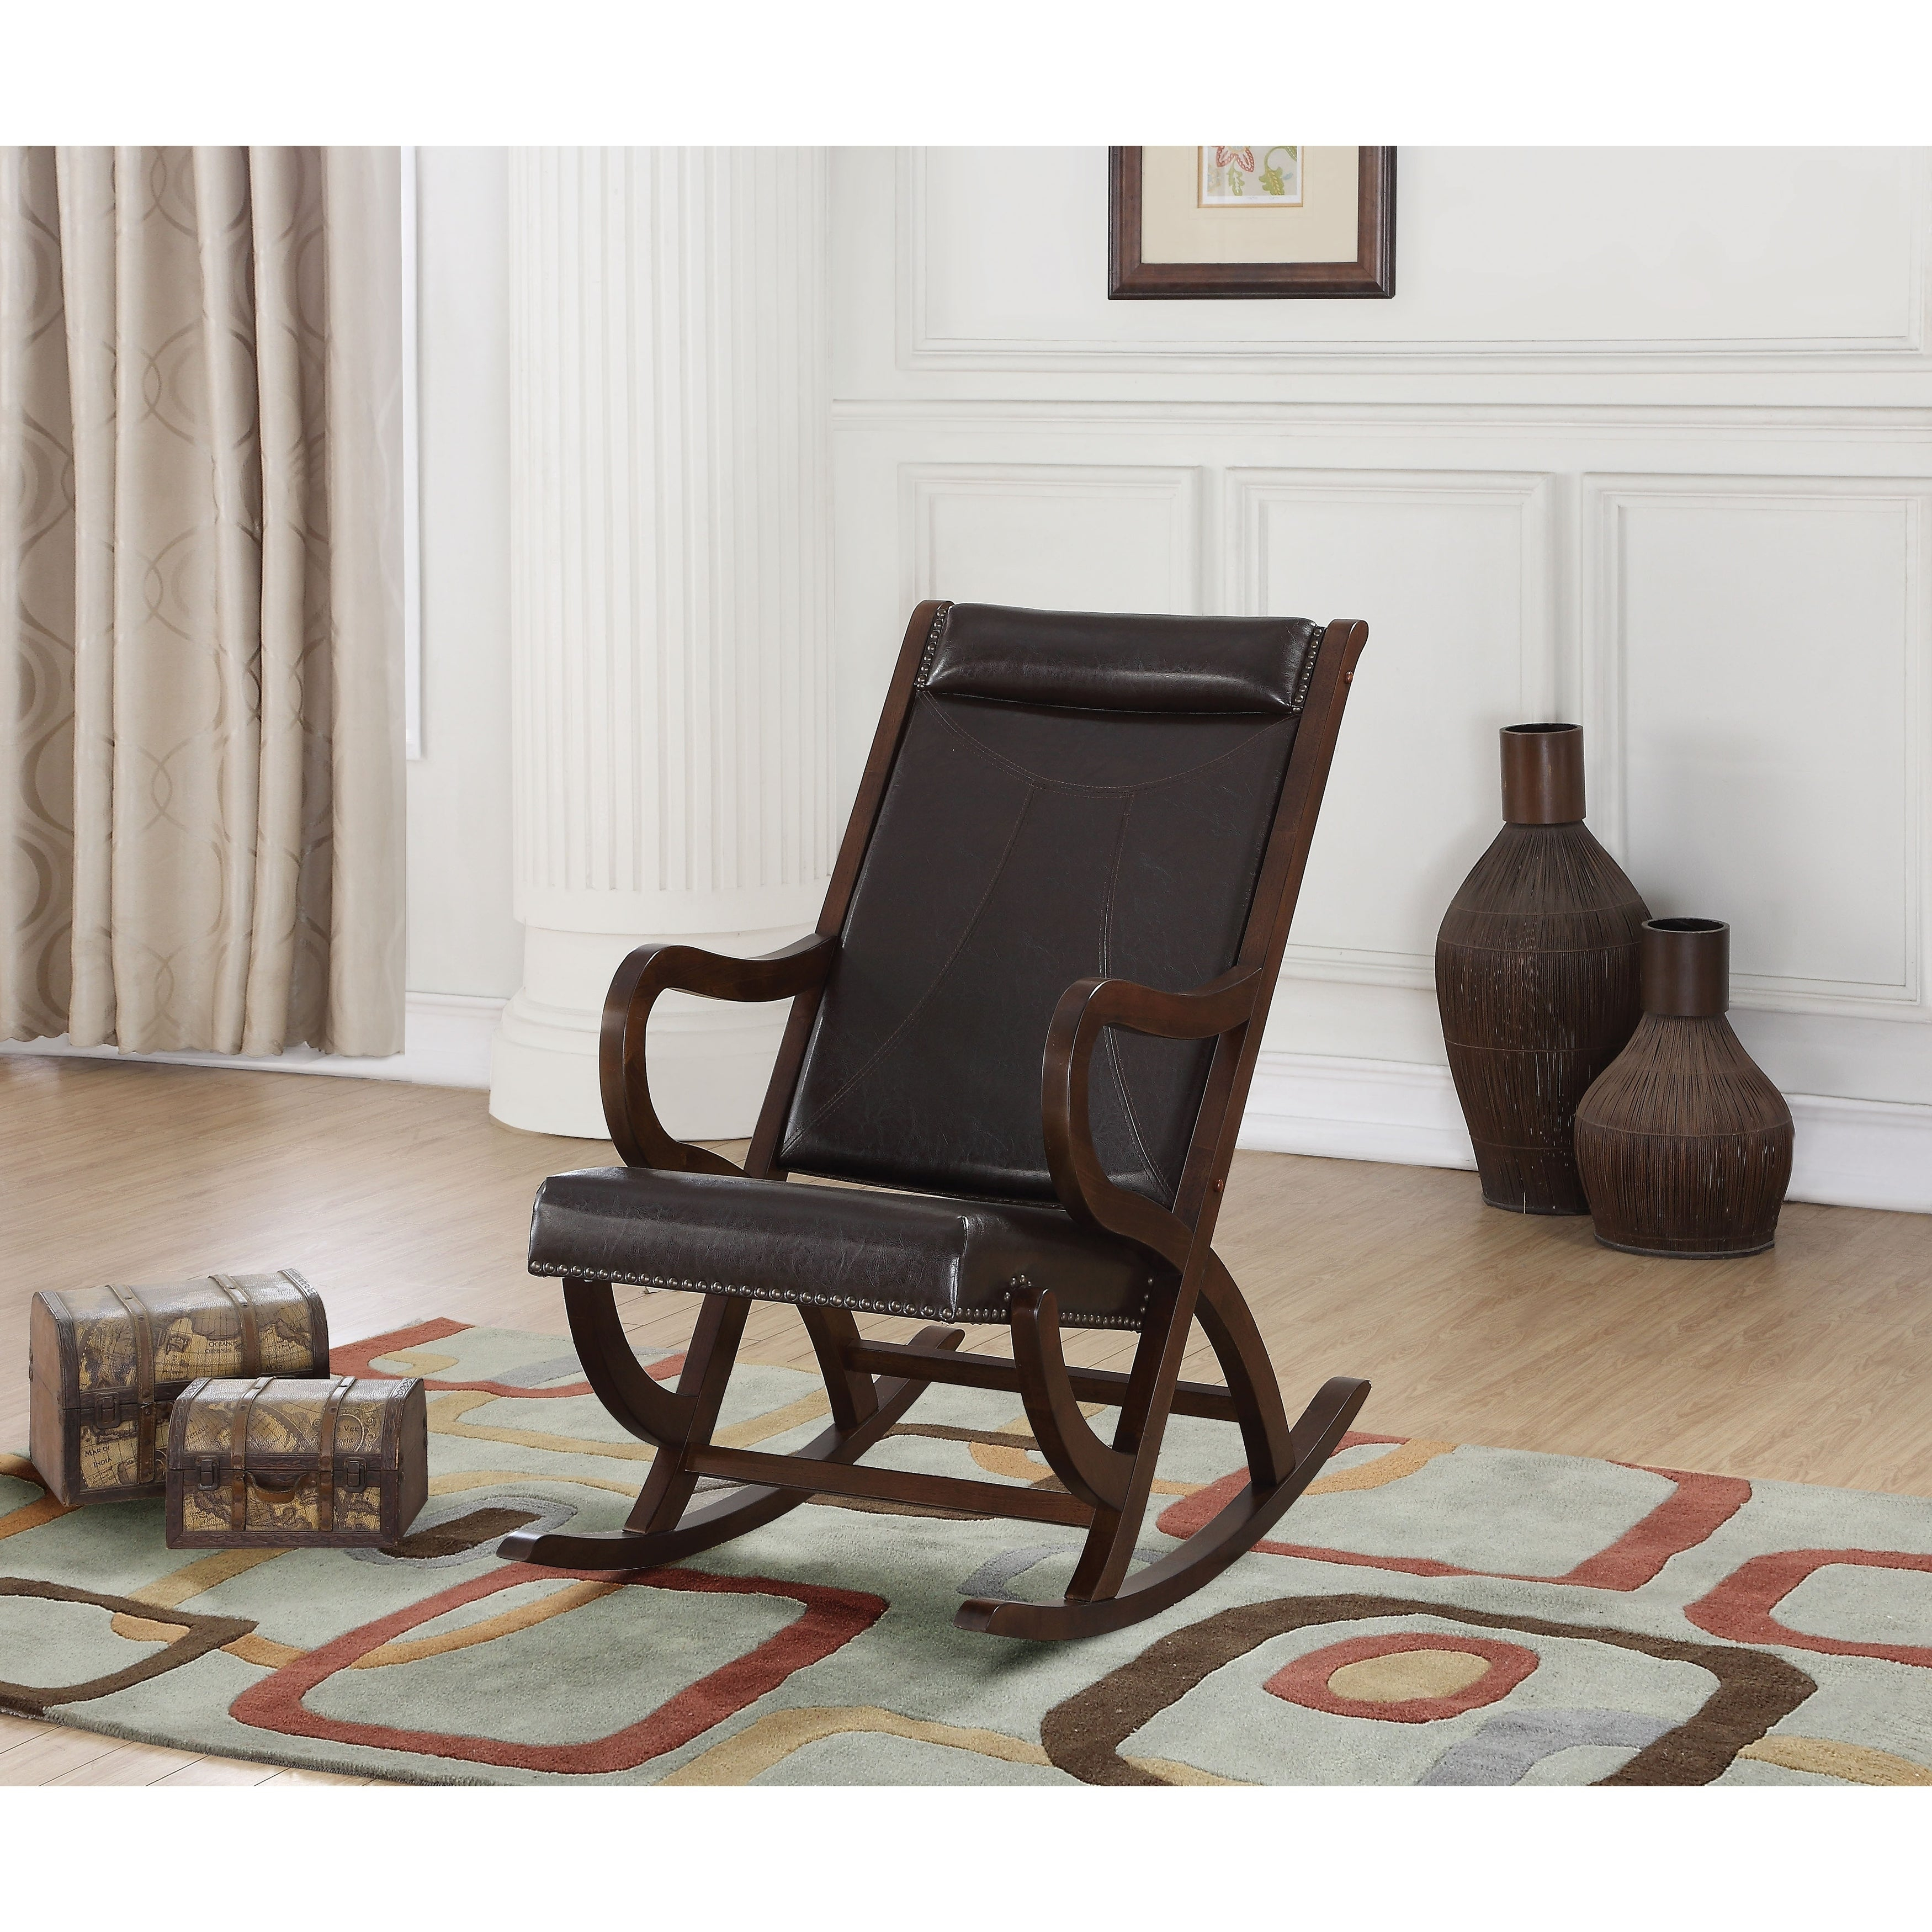 Faux Leather Upholstered Wooden Rocking Chair With Looped Arms, Brown Inside Faux Leather Upholstered Wooden Rocking Chairs With Looped Arms, Brown (#6 of 20)